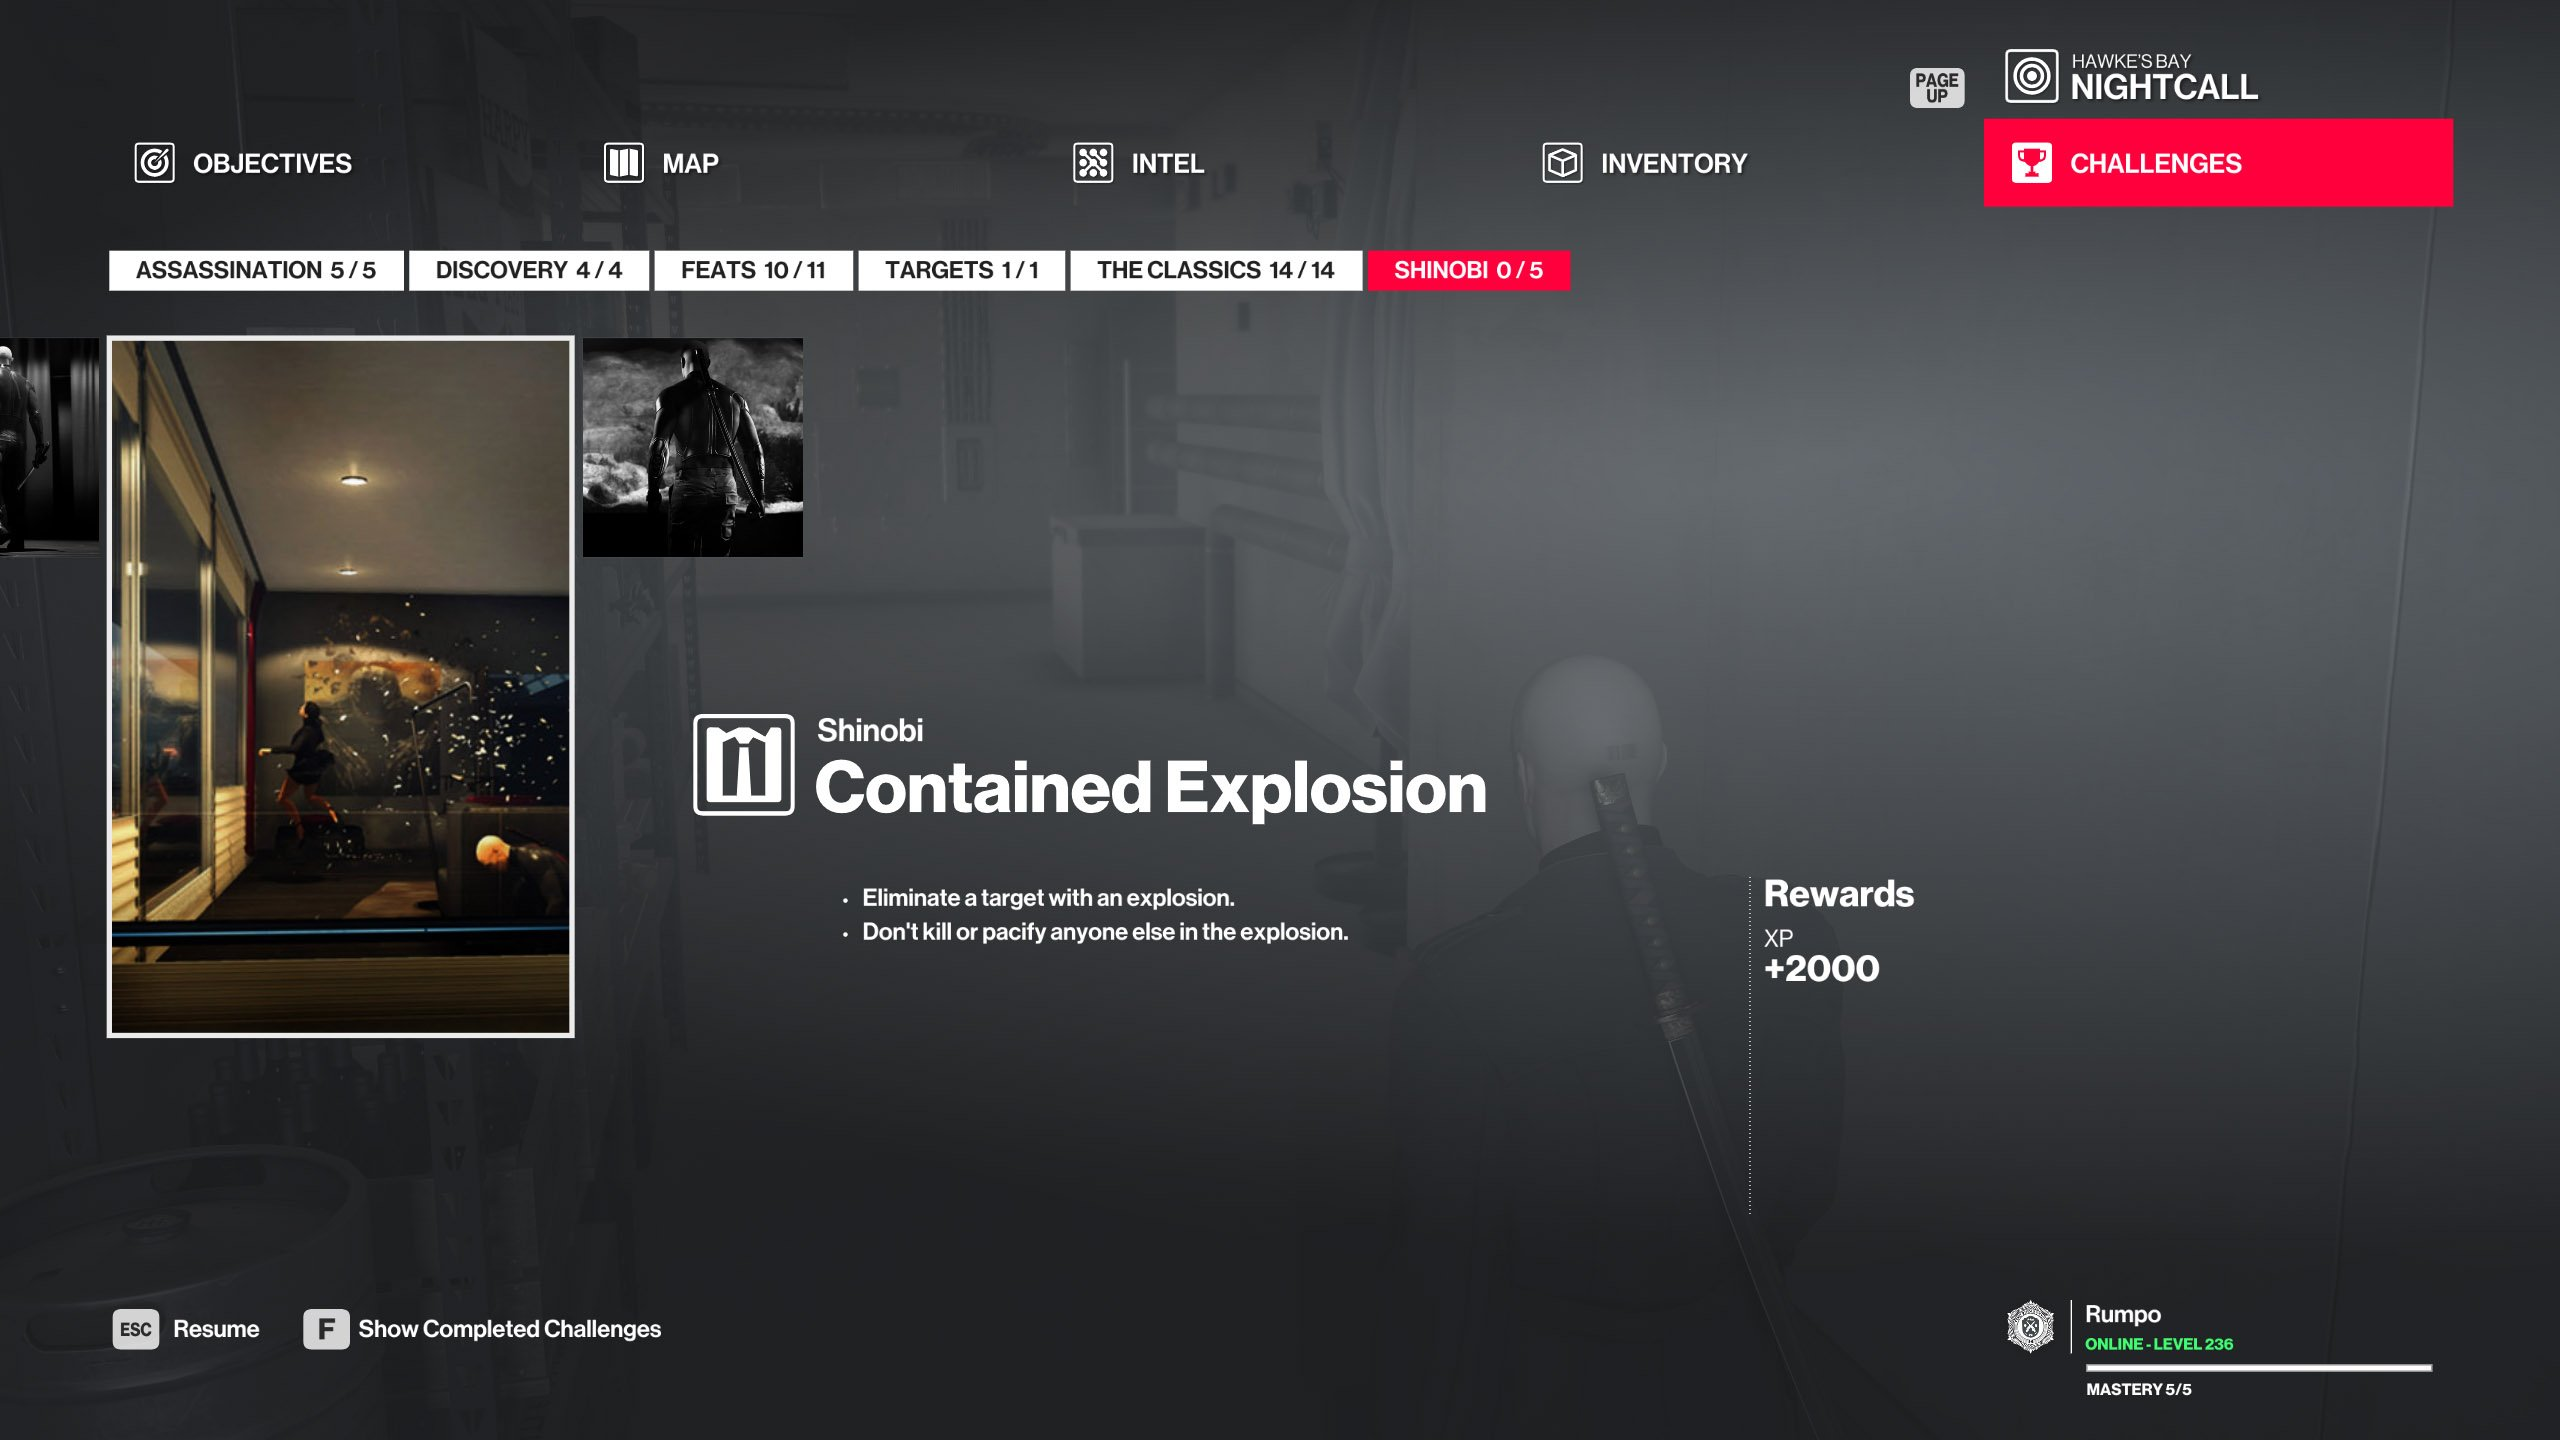 Hitman Shinobi walkthrough - Contained Explosion challenge